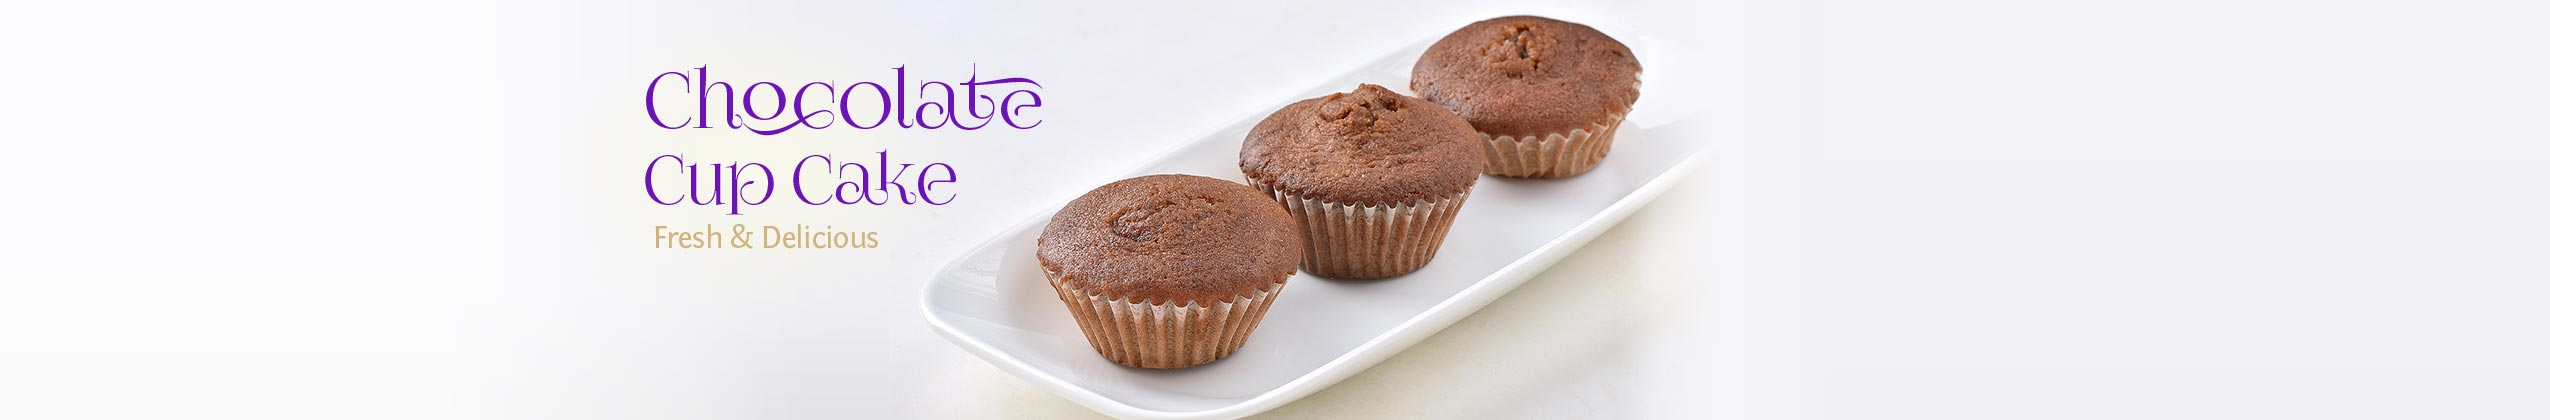 10-Chocolate-Cup-Cake2